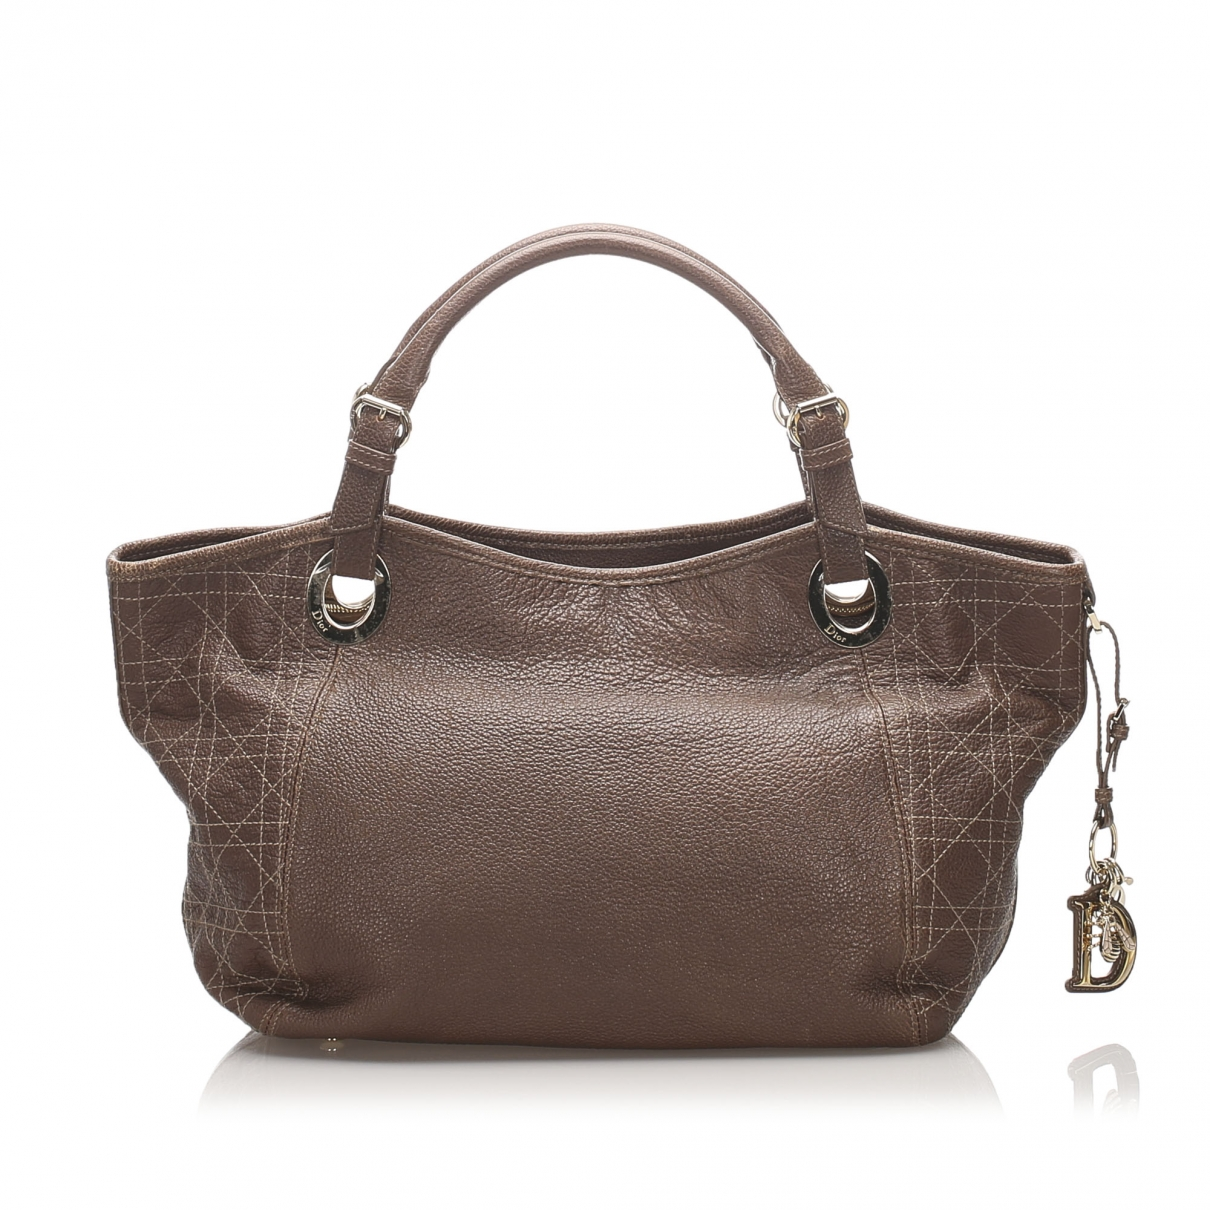 Dior \N Brown Leather handbag for Women \N